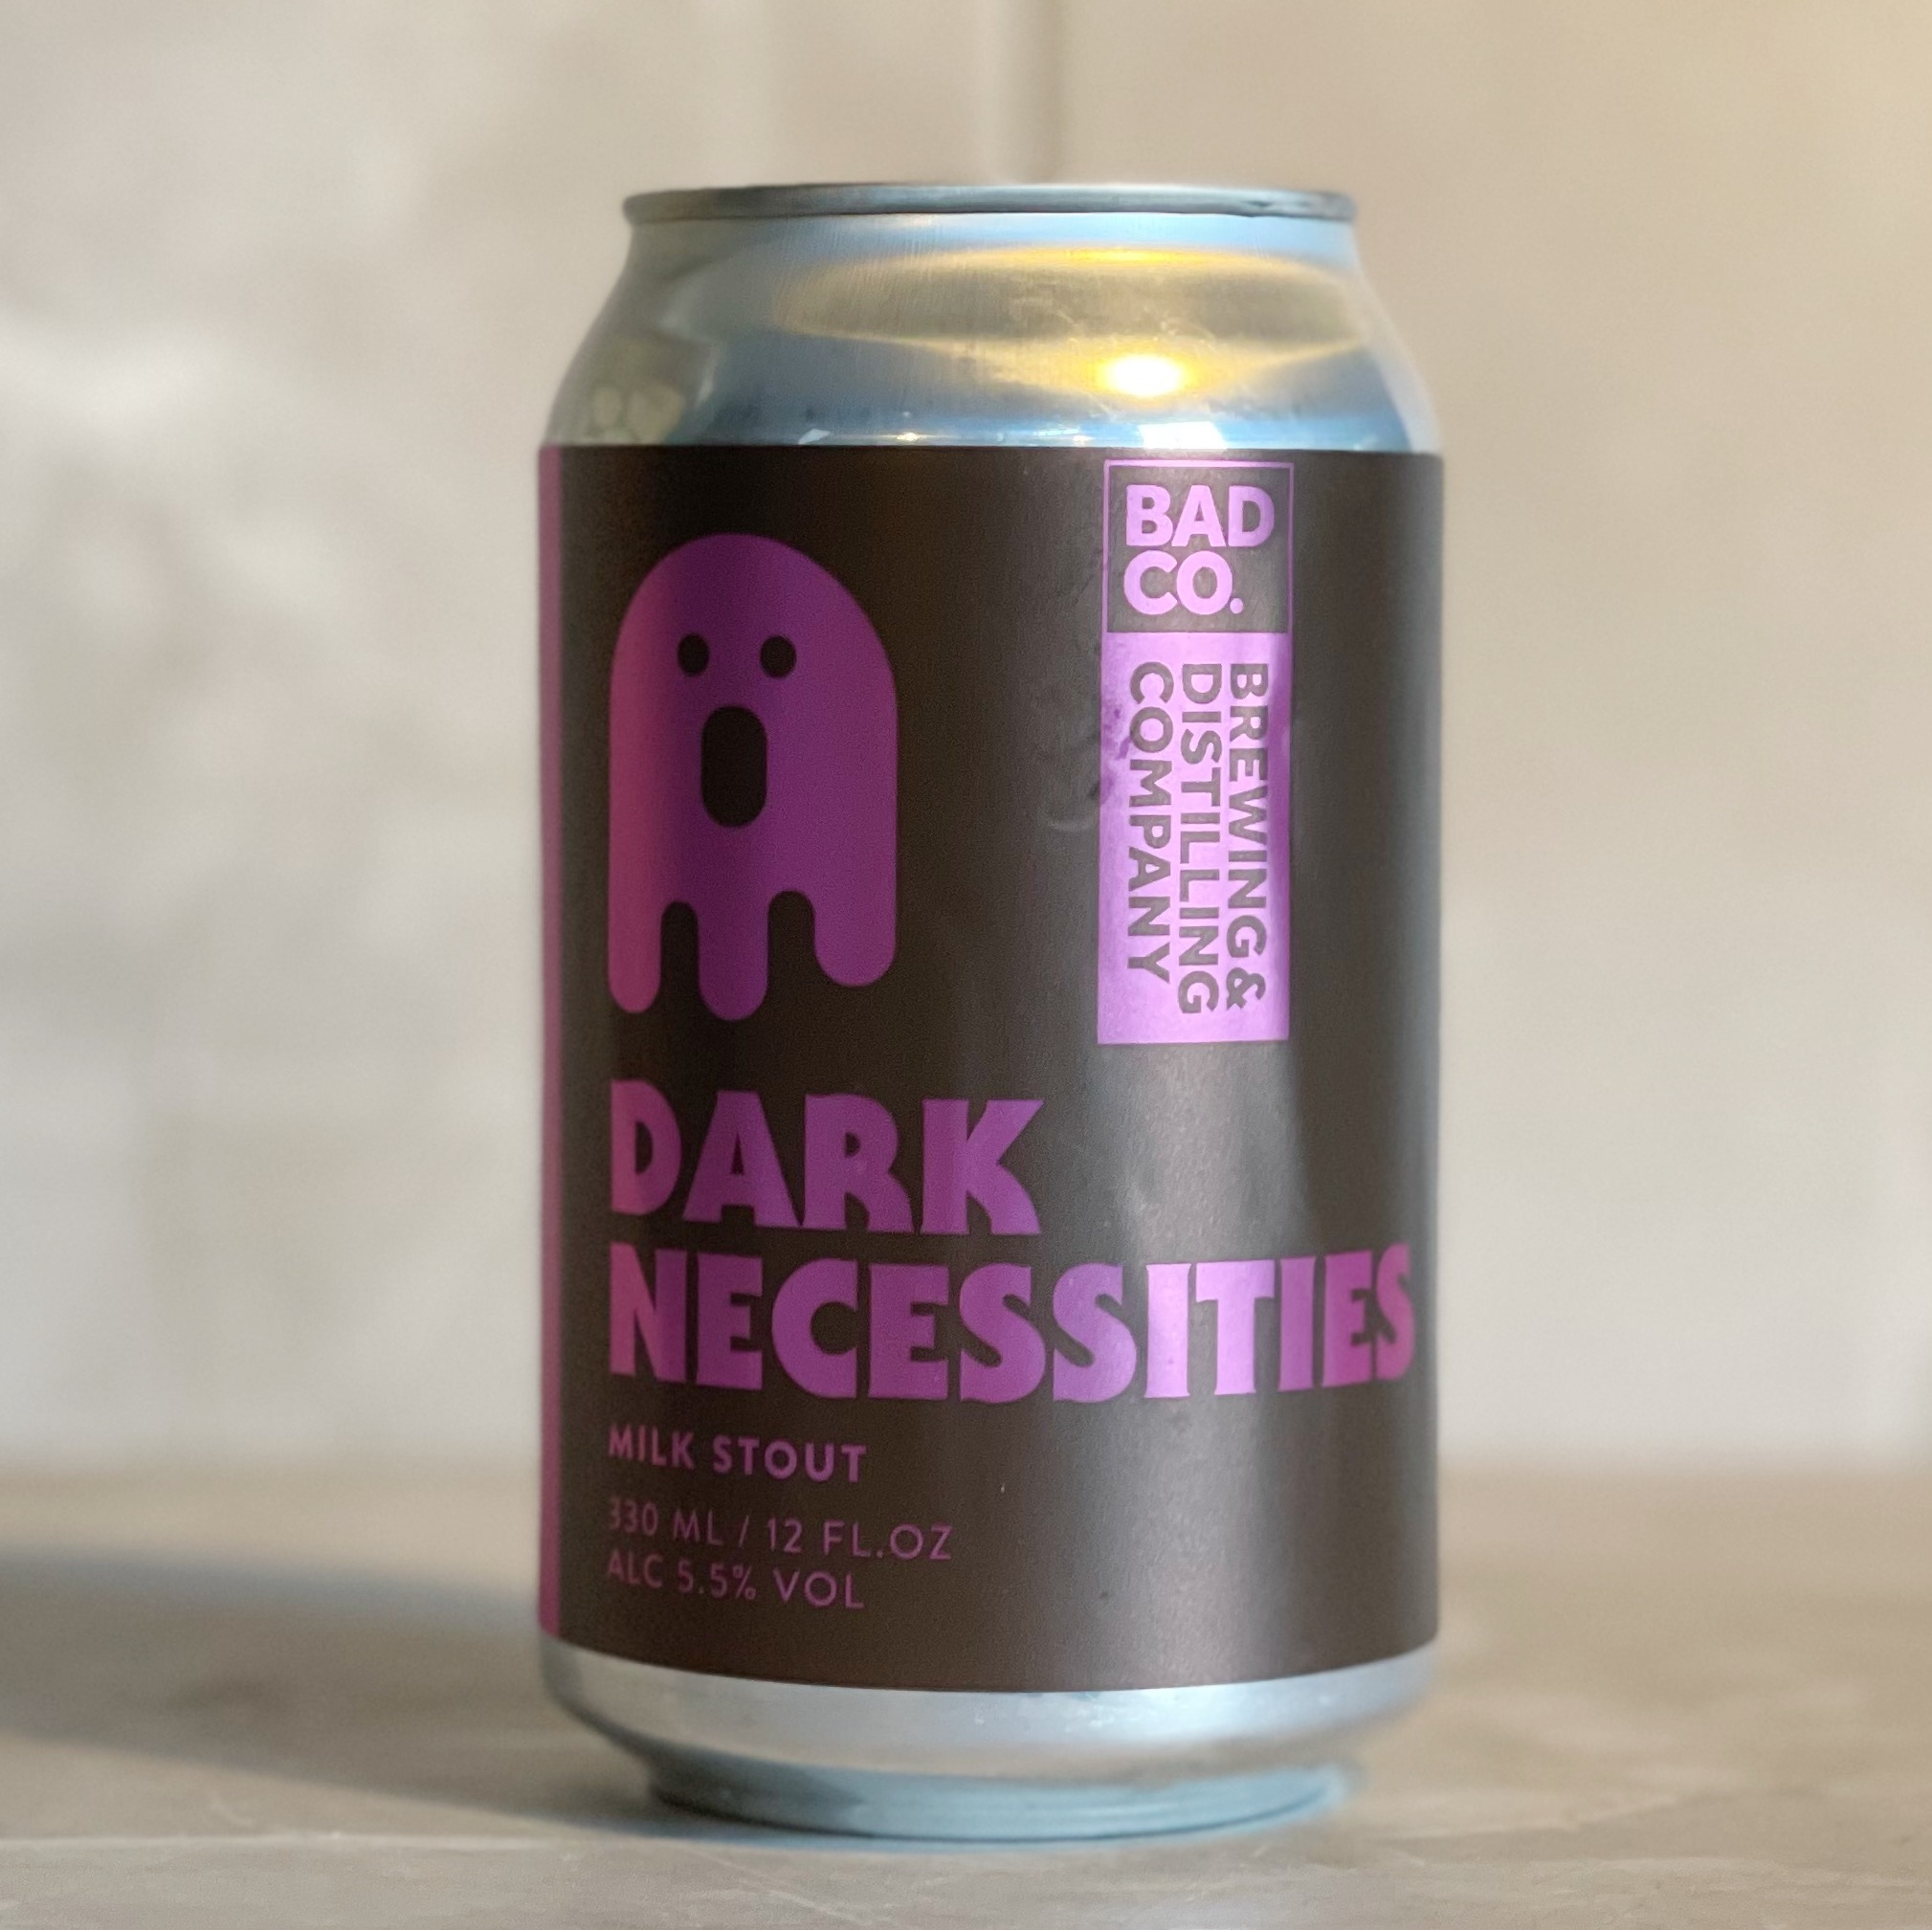 BAD CO | DARK NECESSITIES | MILK STOUT | 5.5% ABV | 330ML